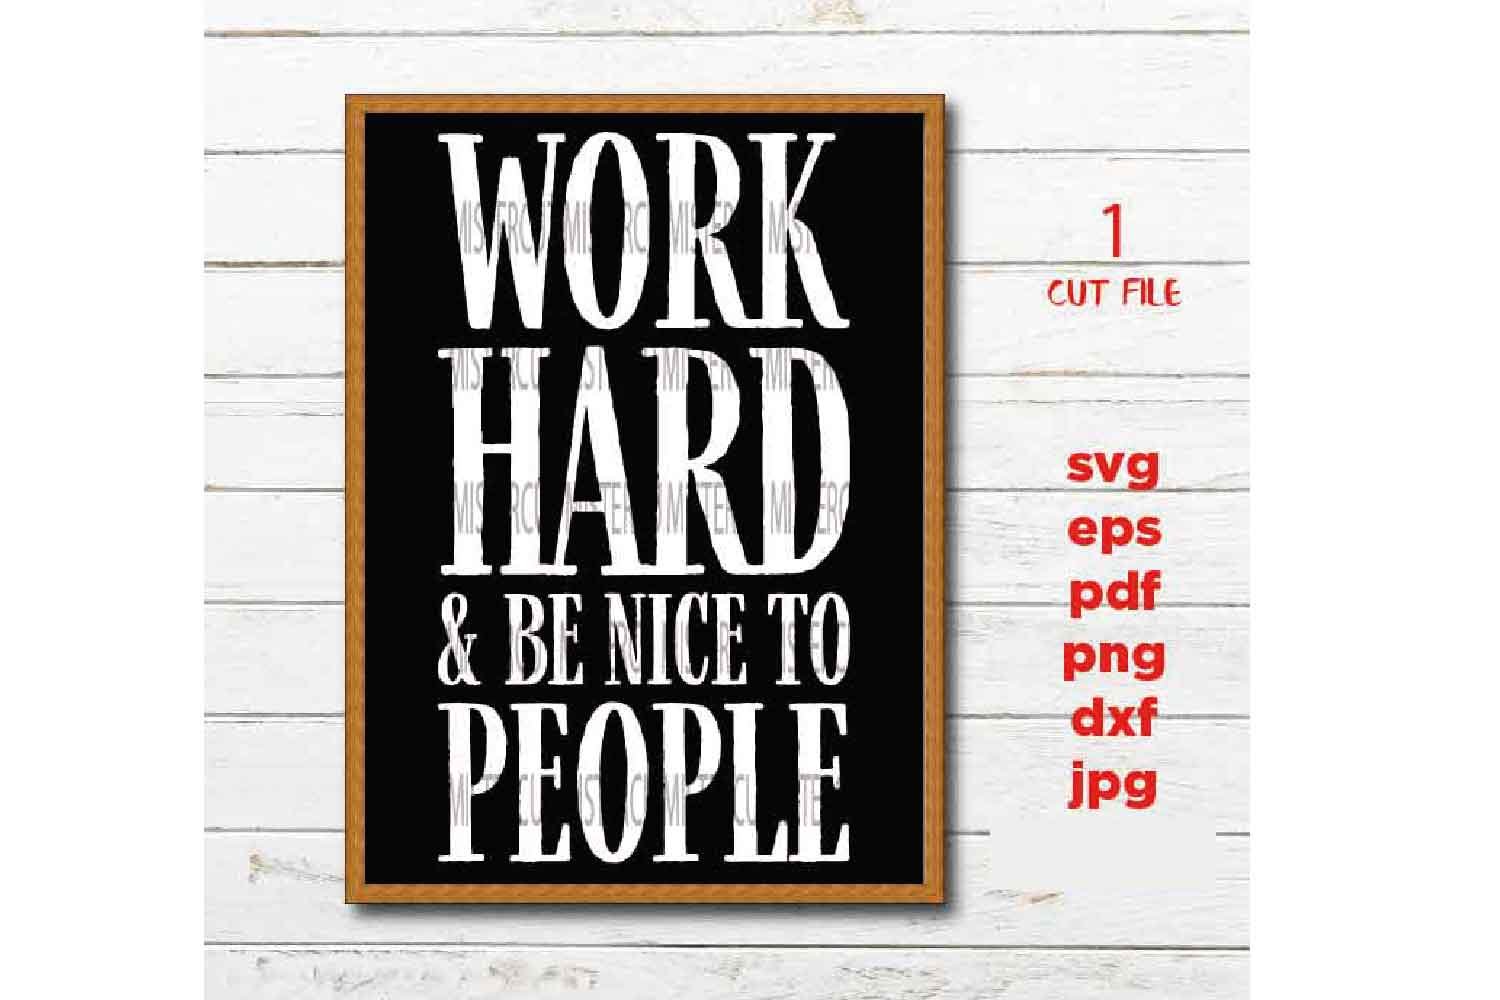 Work Hard And Be Nice To People, Office Wall Decor SVG, dxf, example image 1